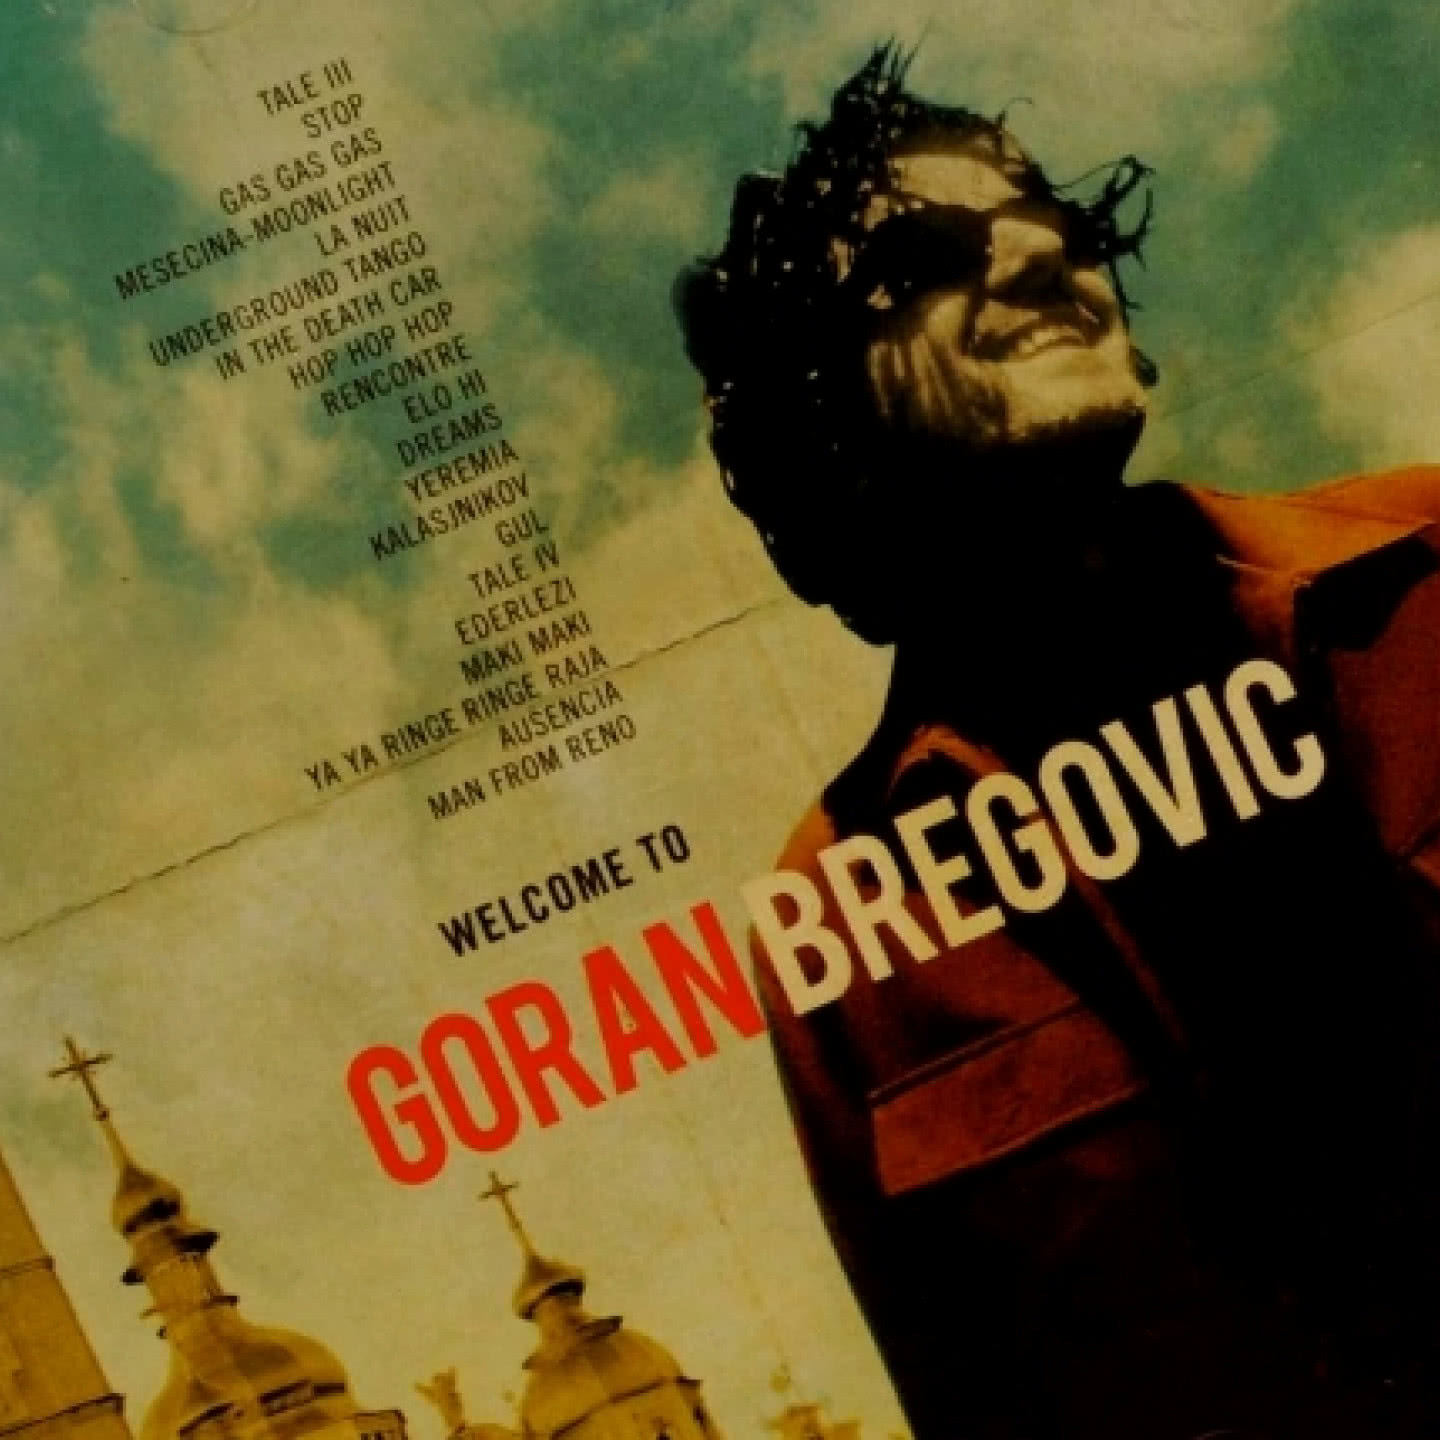 Welcome To Goran Bregović